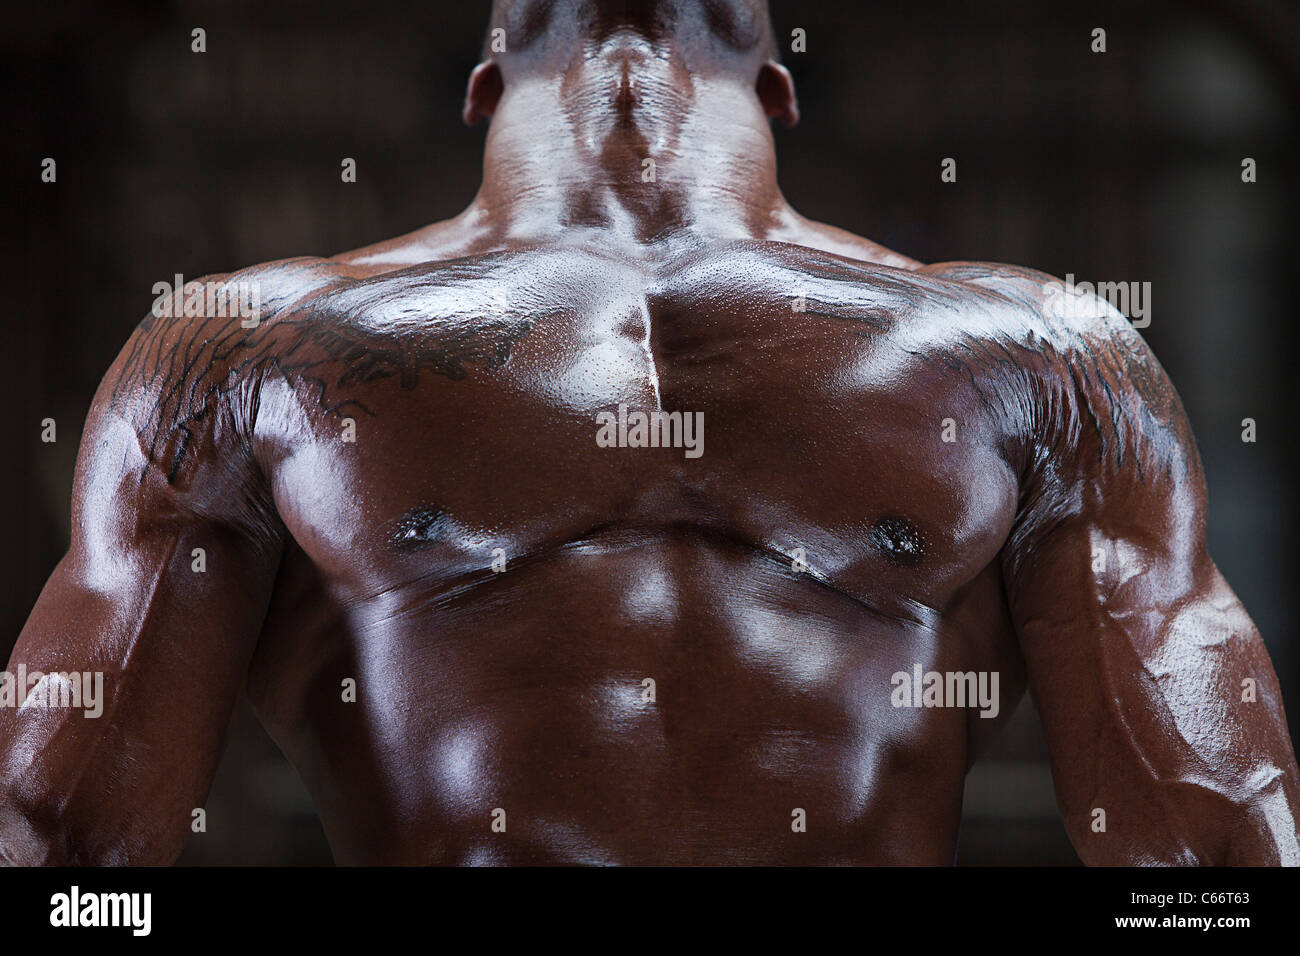 Chest Muscle Stock Photos Chest Muscle Stock Images Alamy